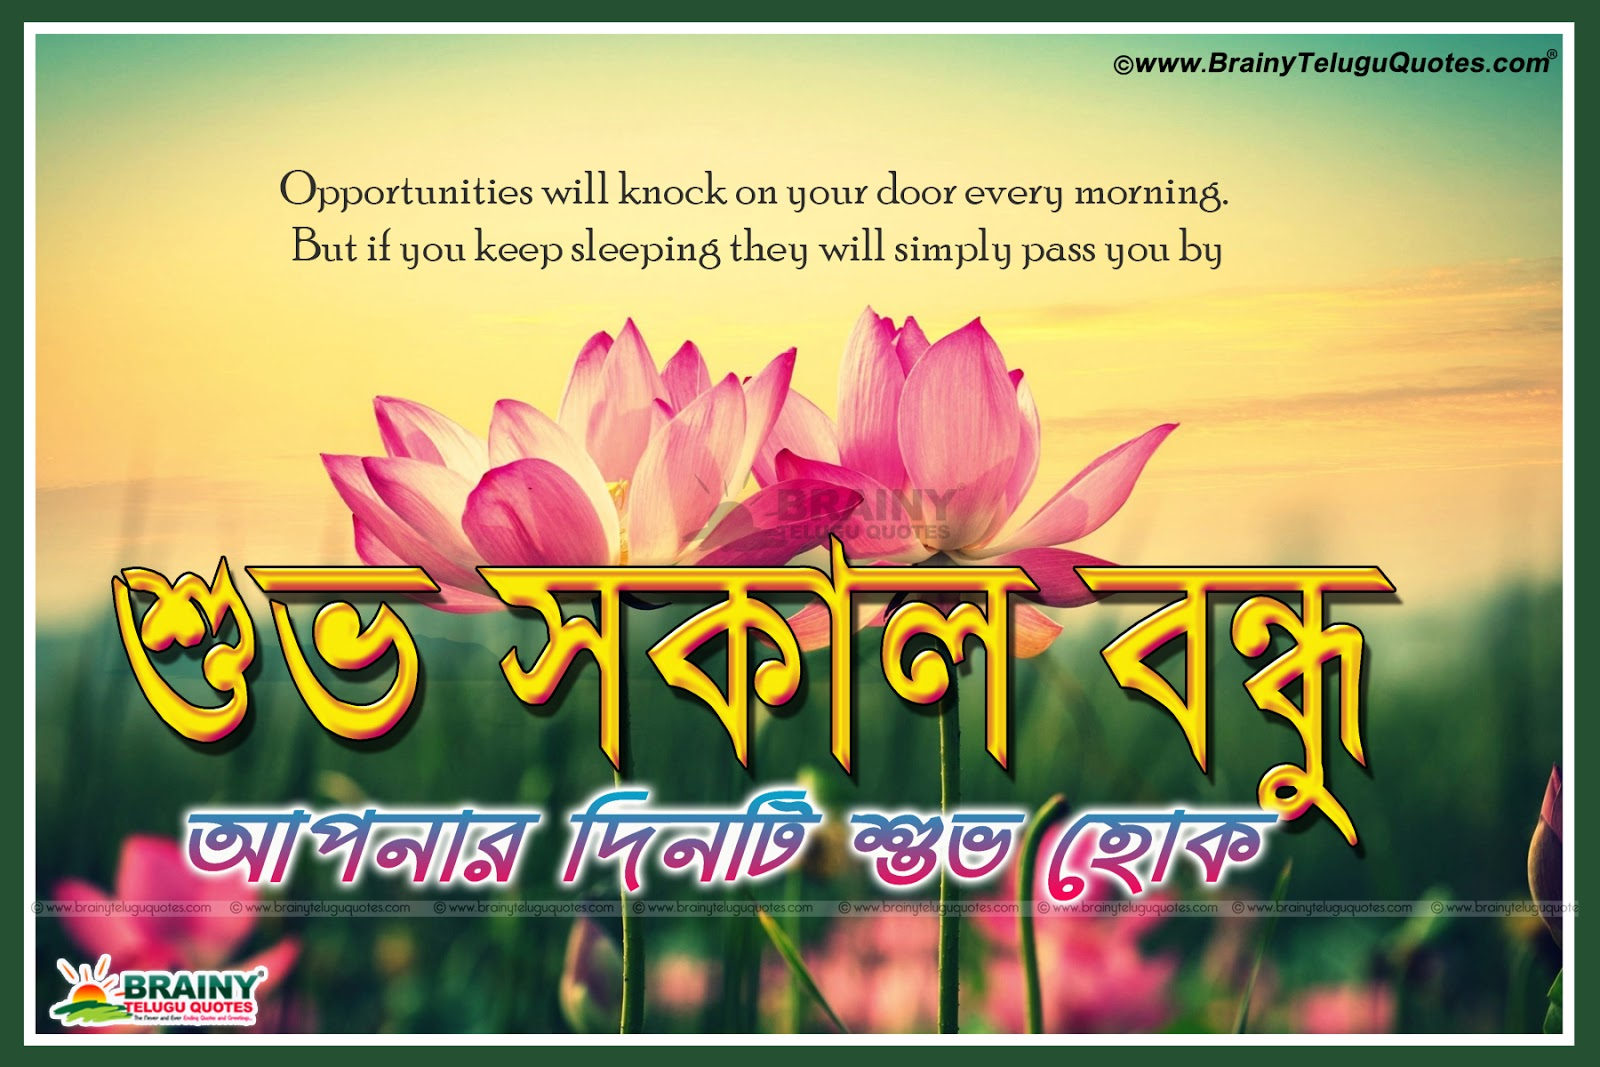 Good morning wishes quotes with bengali greeting cards online best good morning quotations and sayings in bengali language have a nice day greetings and kristyandbryce Gallery